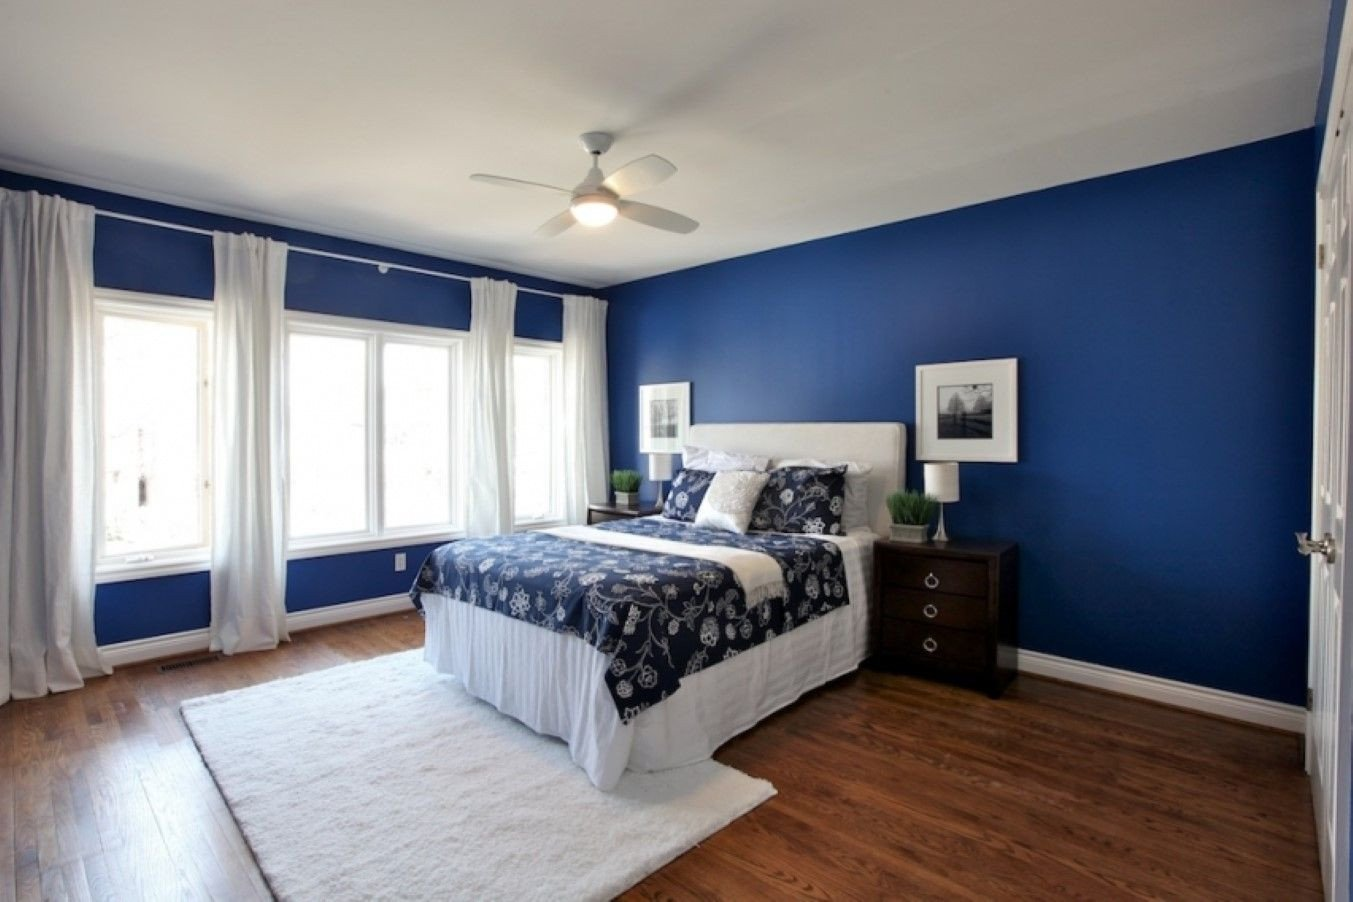 Navy Blue Bedroom Ideas Lovely Image Result for Navy Blue and White Boys Room